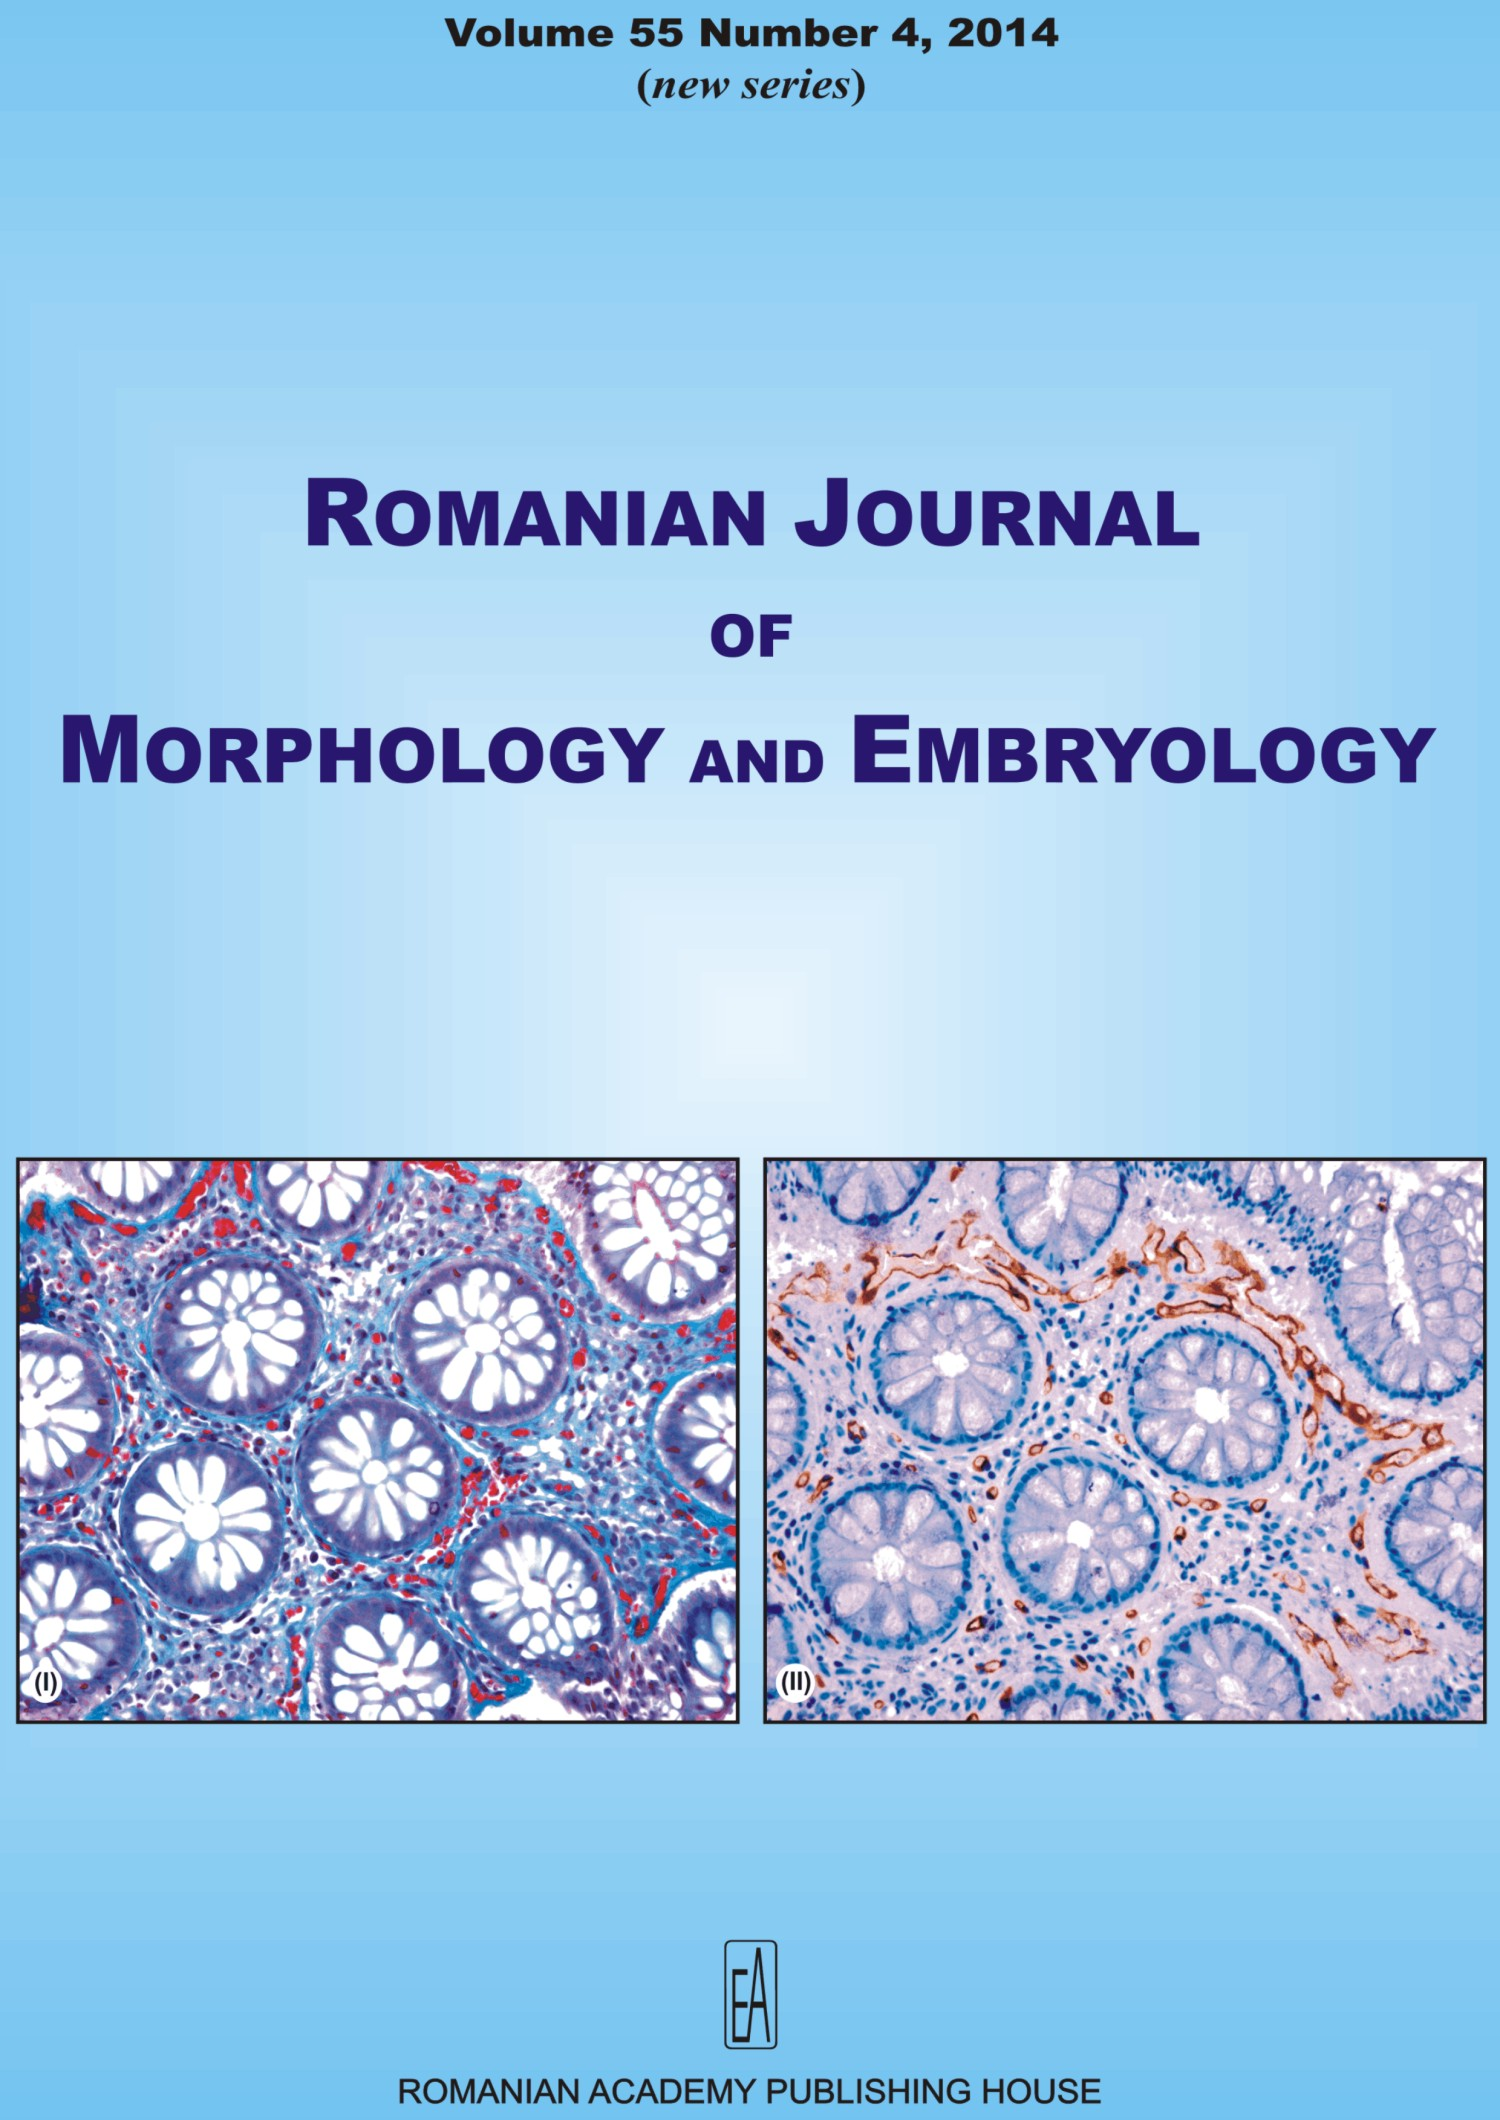 Romanian Journal of Morphology and Embryology, vol. 55 no. 4, 2014